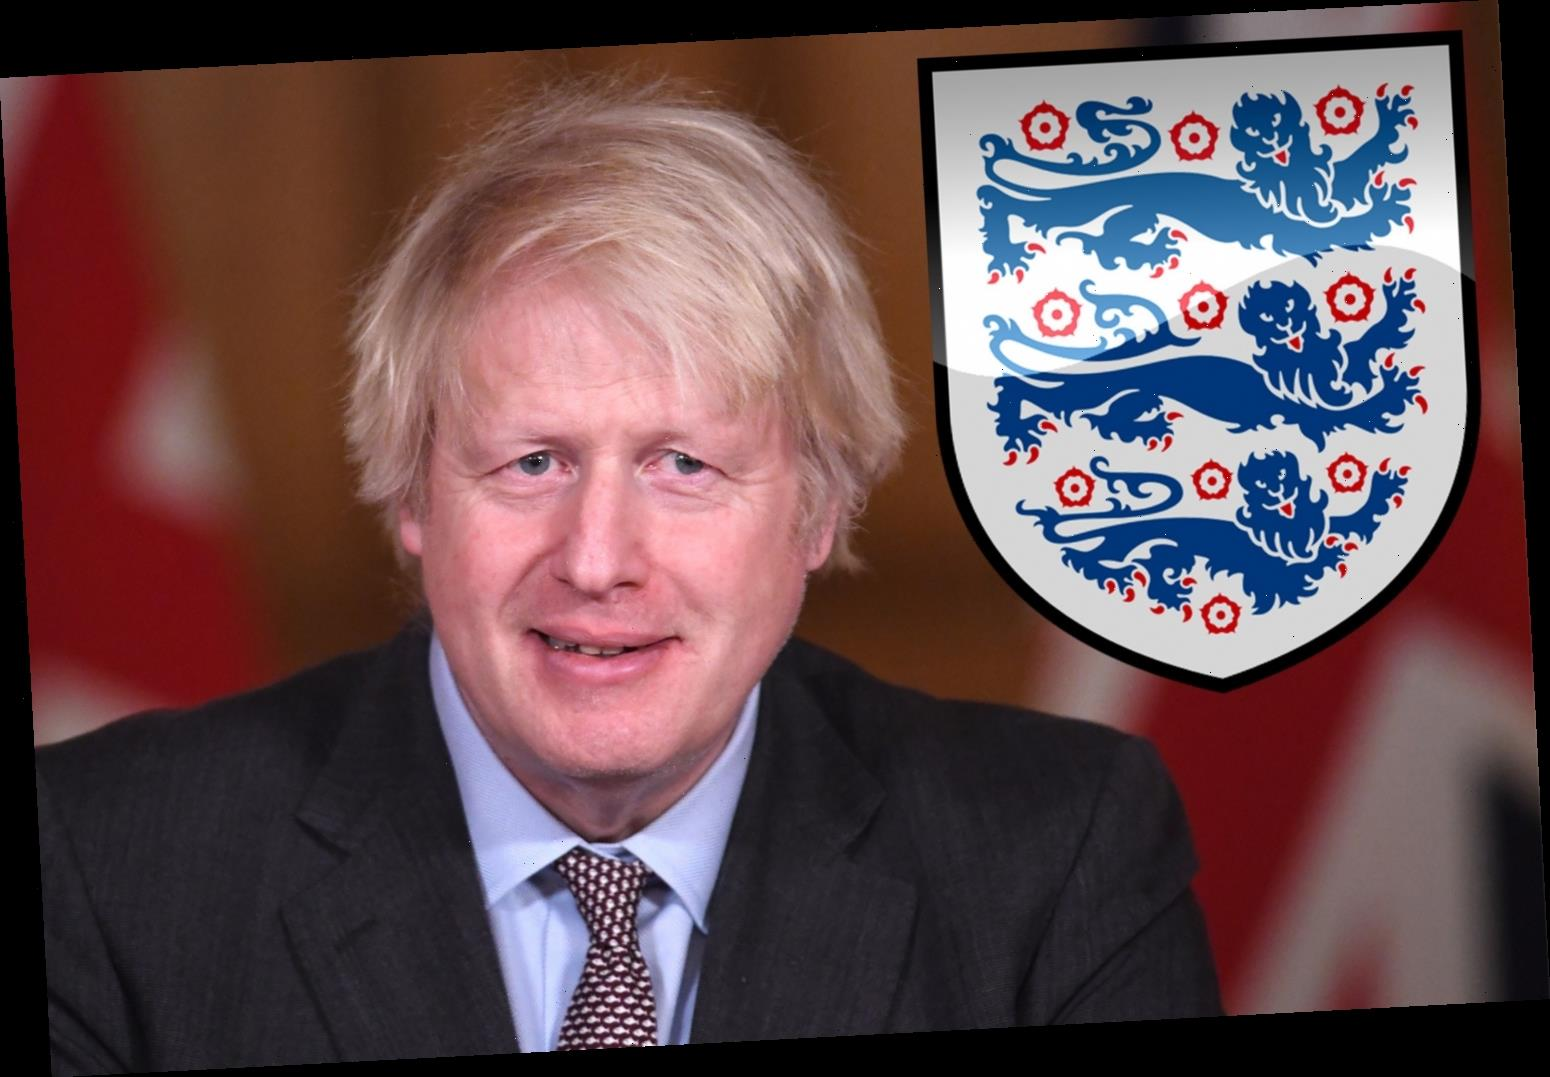 England in another Euro 2020 boost with FA welcoming more matches as Boris Johnson backs host bid after vaccine heroics